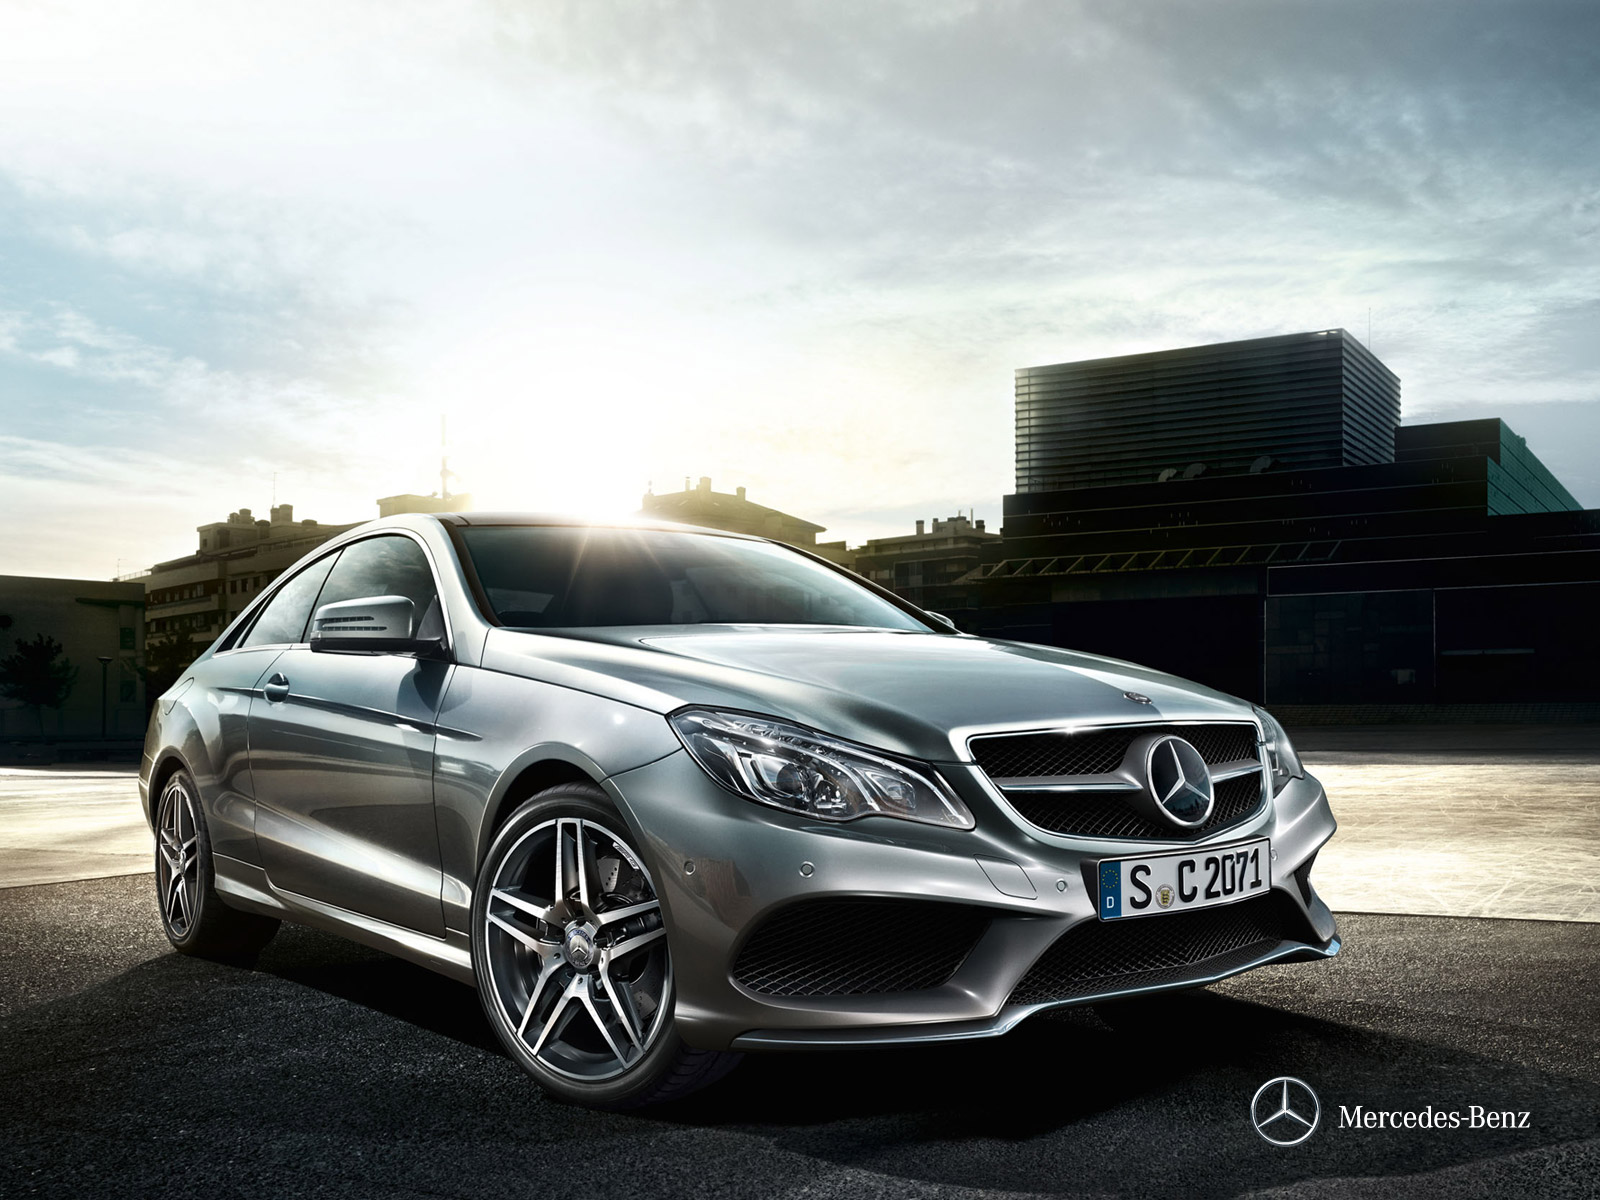 Our dream cars 2014 mercedes benz e class coupe for 2014 mercedes benz e class coupe